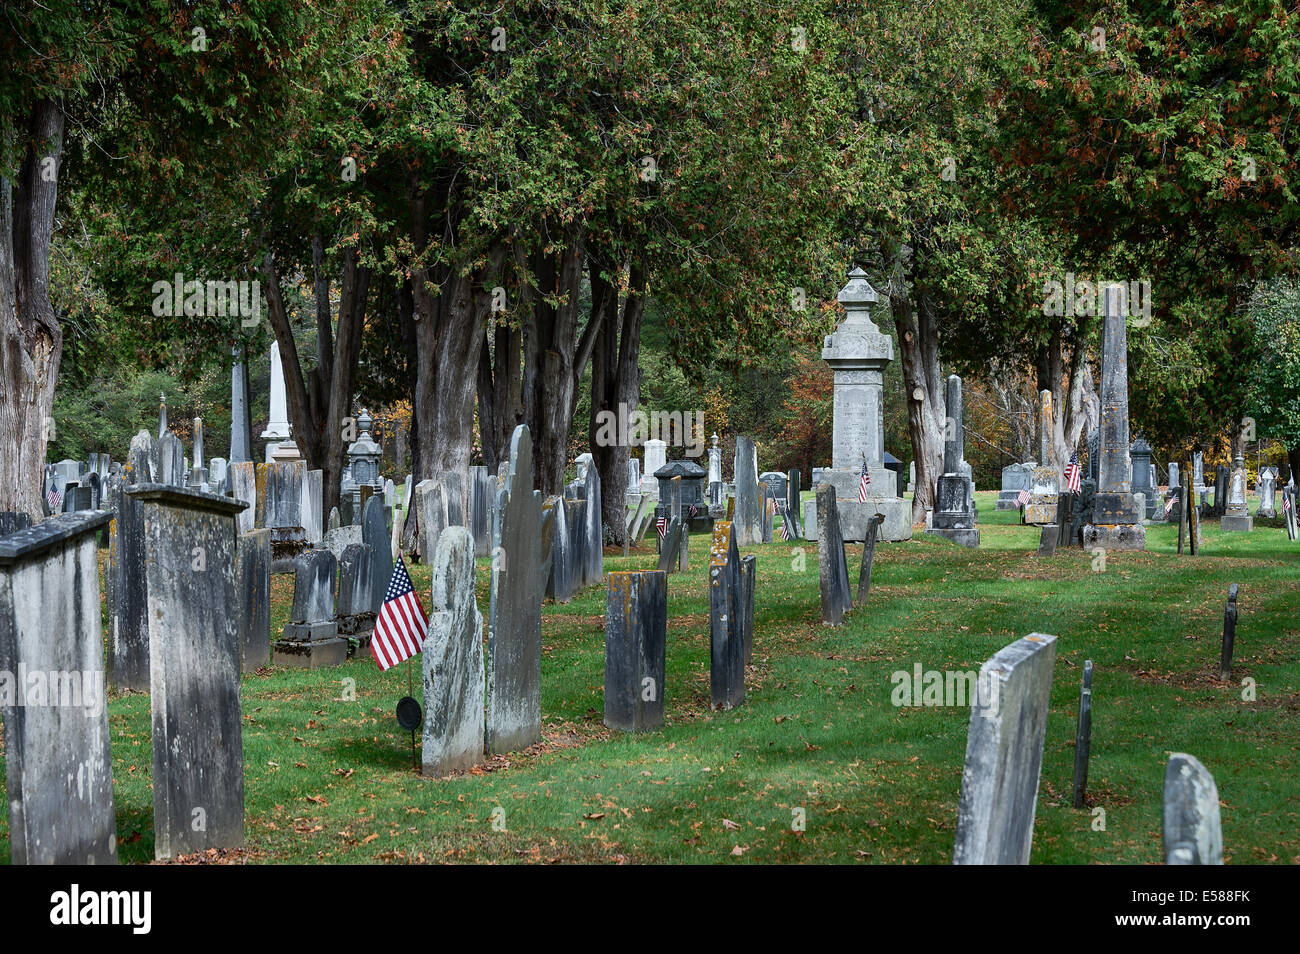 Cemetery memorials, Chester, Vermont, USA - Stock Image